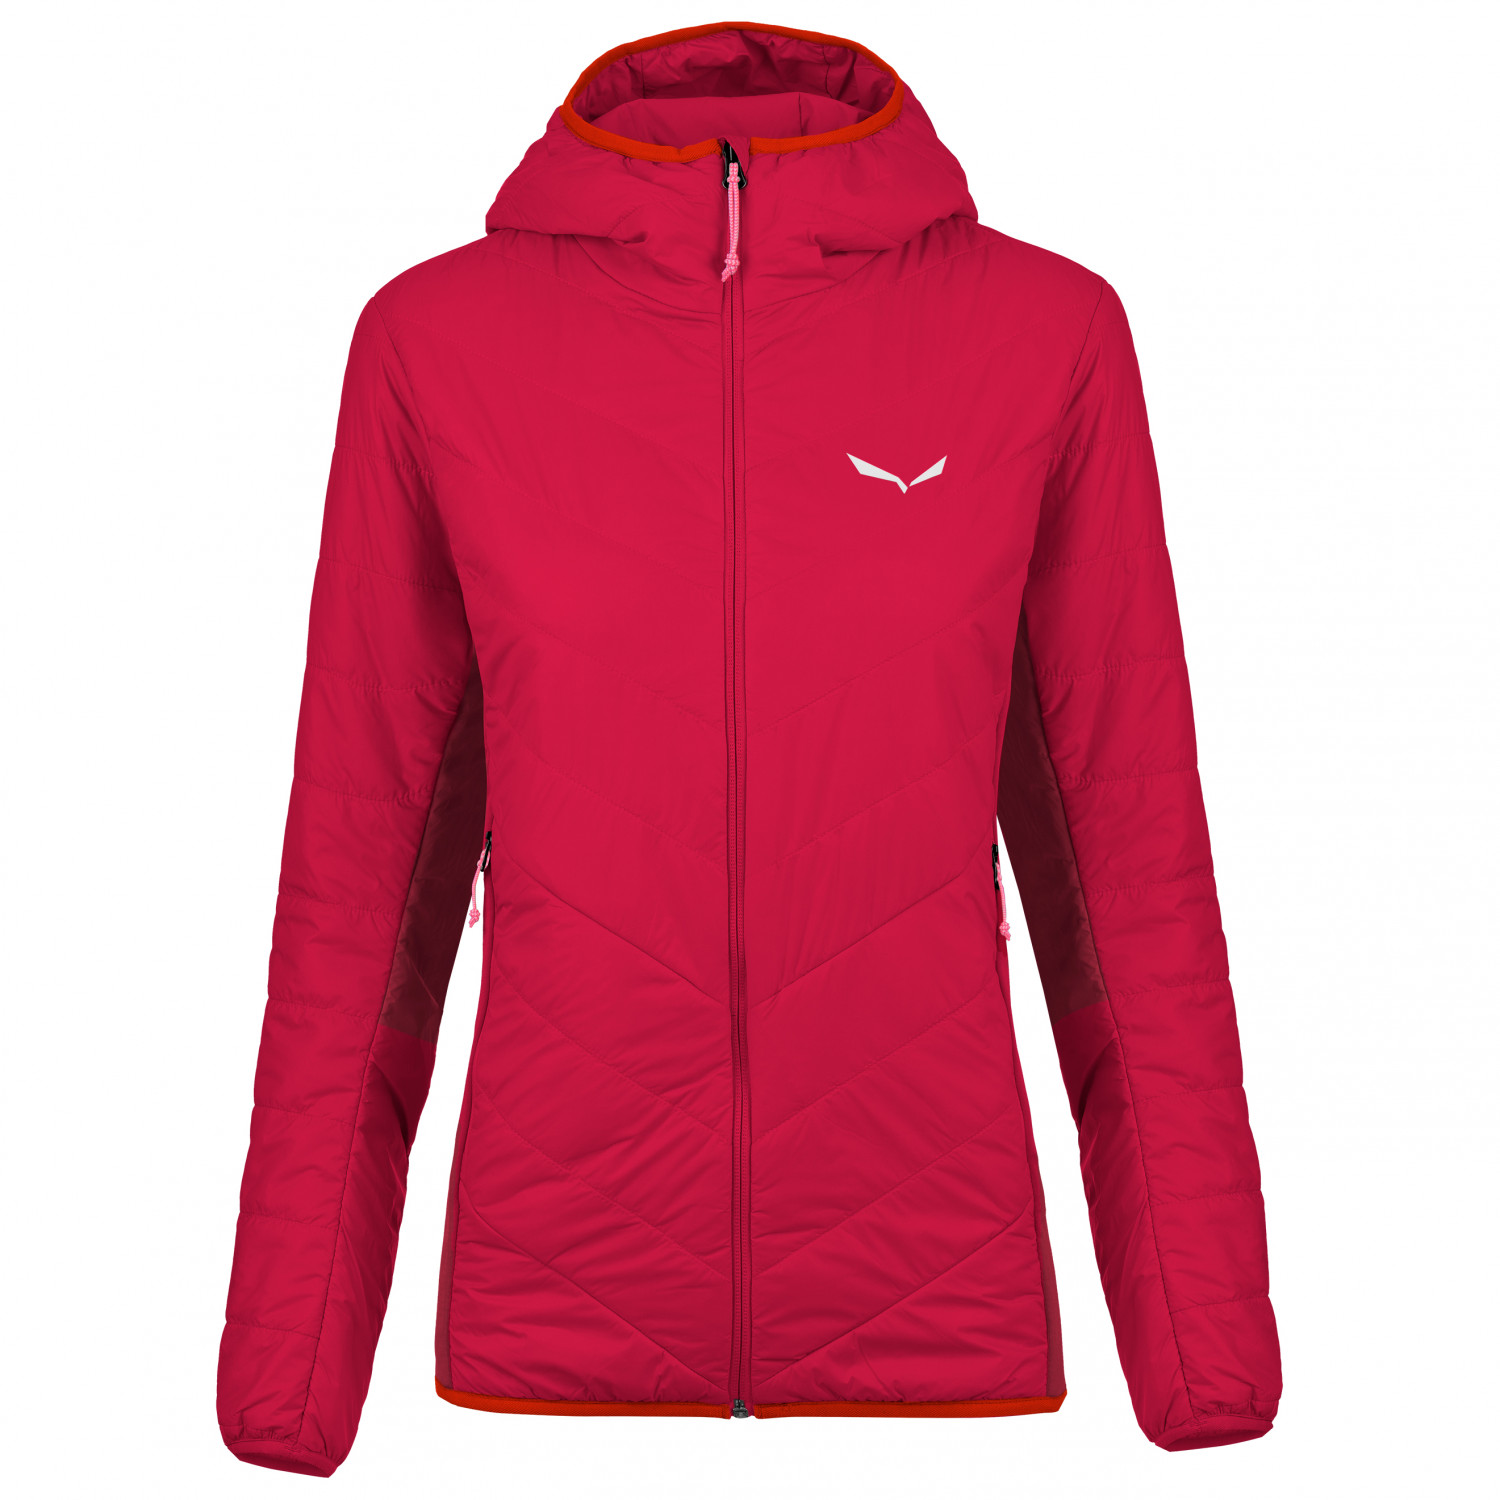 Duran Euit40eu Red34 Salewa Hybrid Primaloft Synthetic Jacket 3 Women's Rose WYIE92DbeH